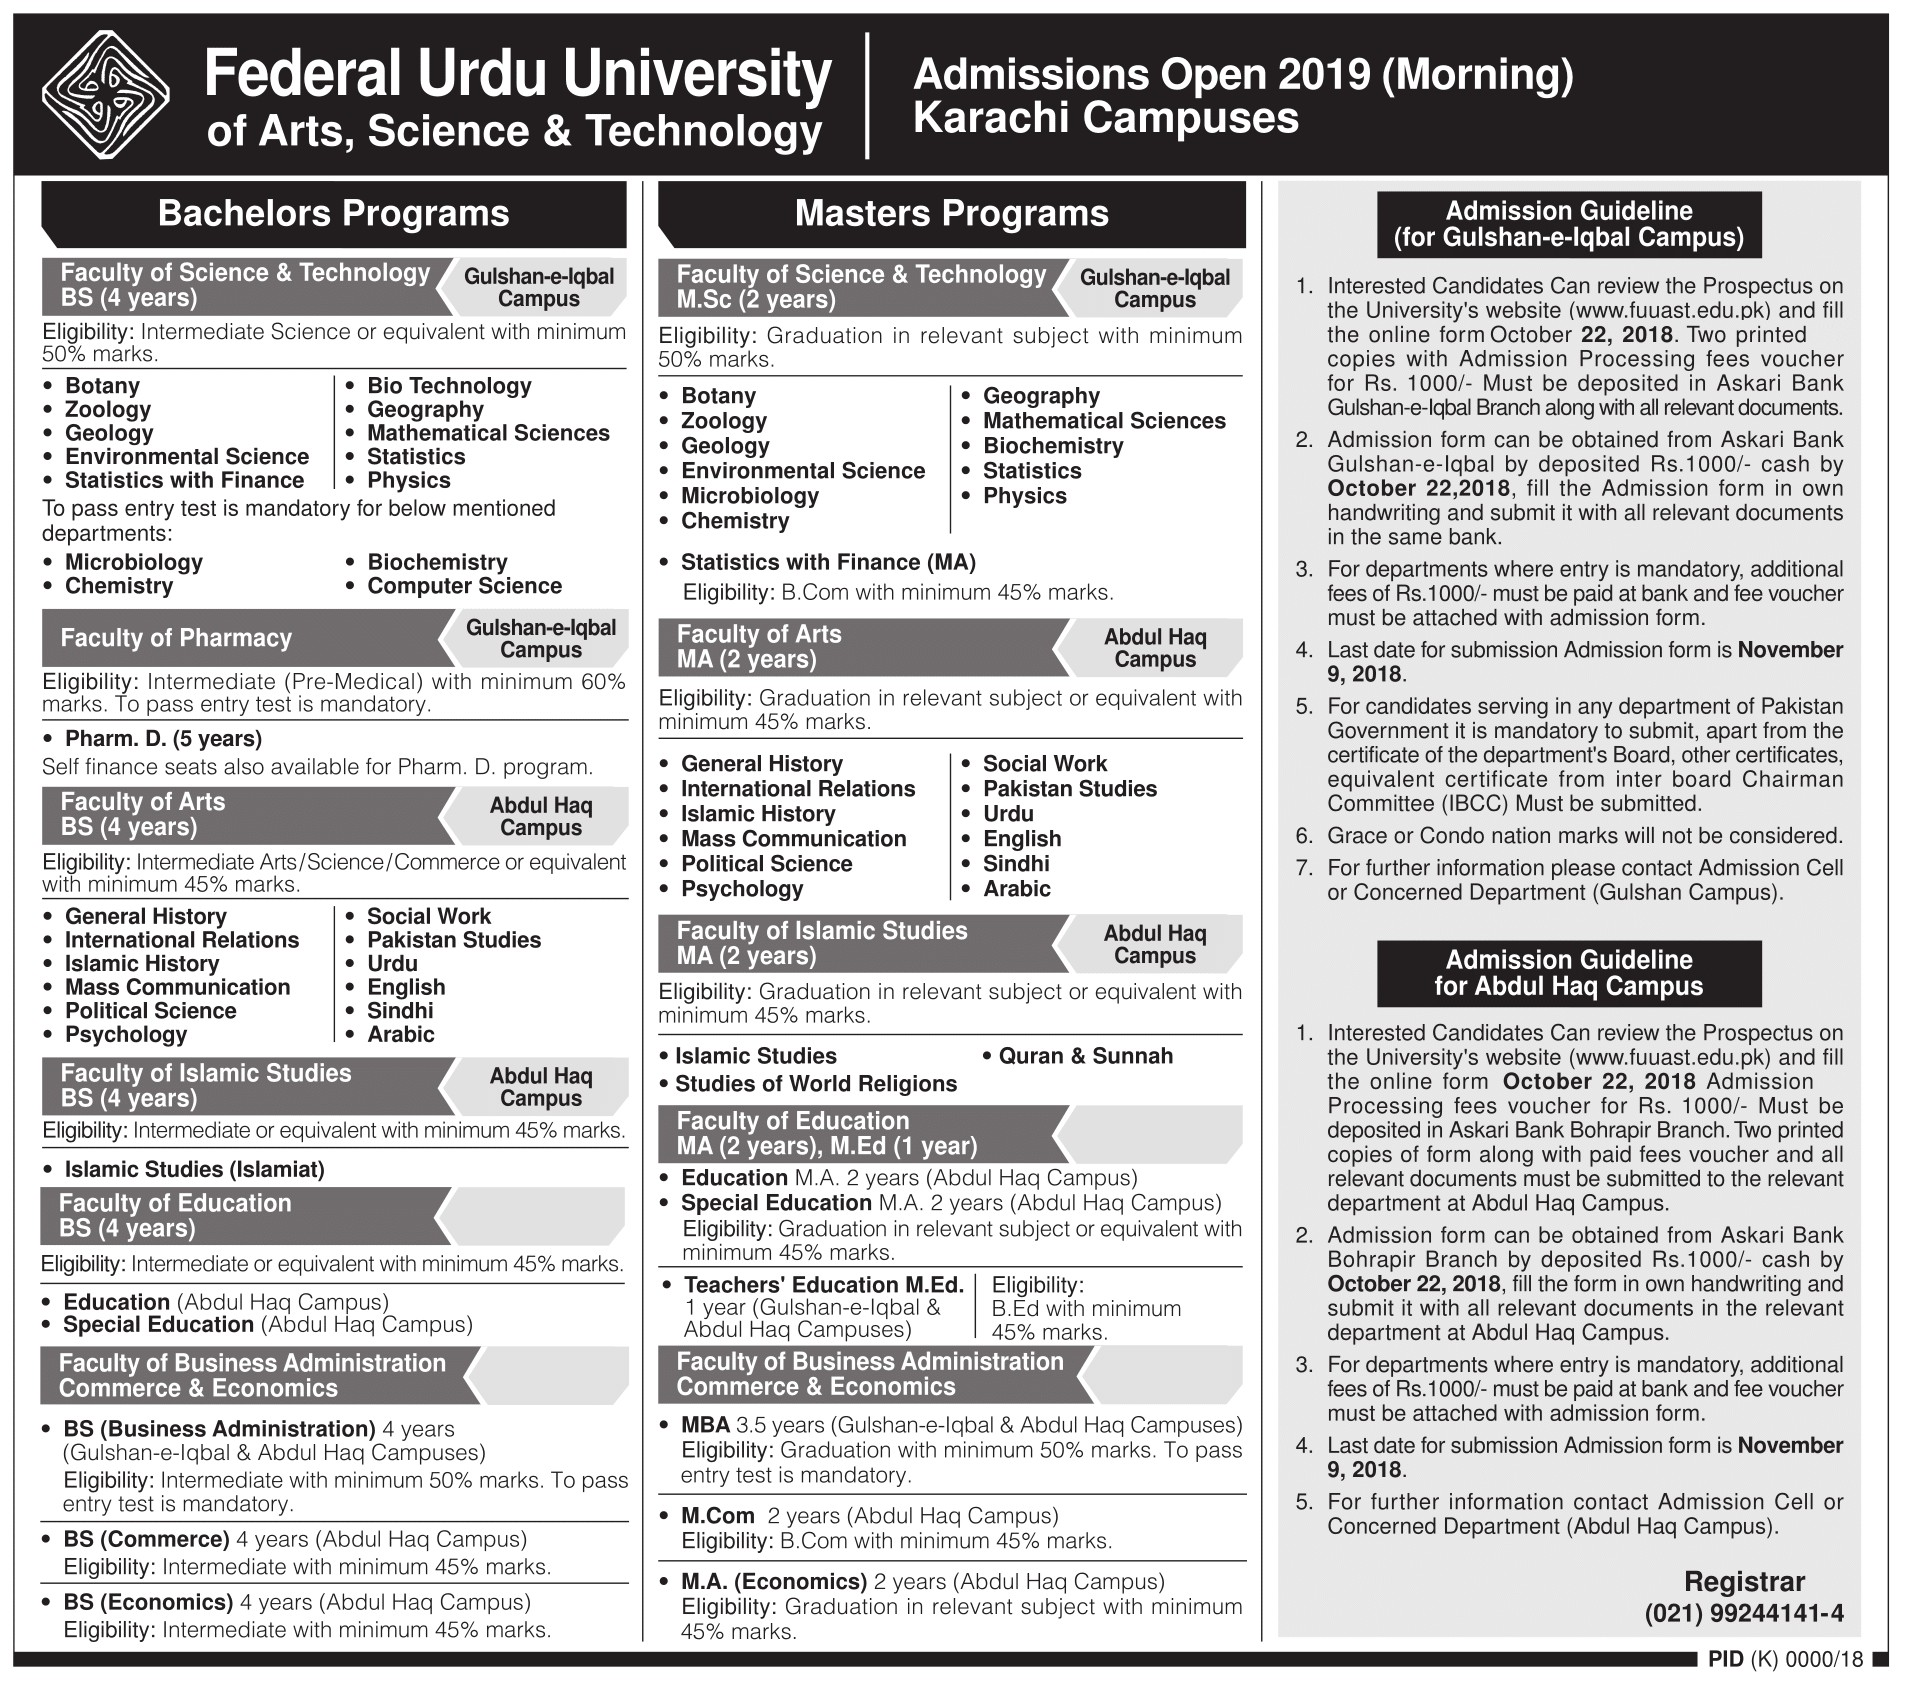 FUUAST Admission 2019 Morning Advertisement in English